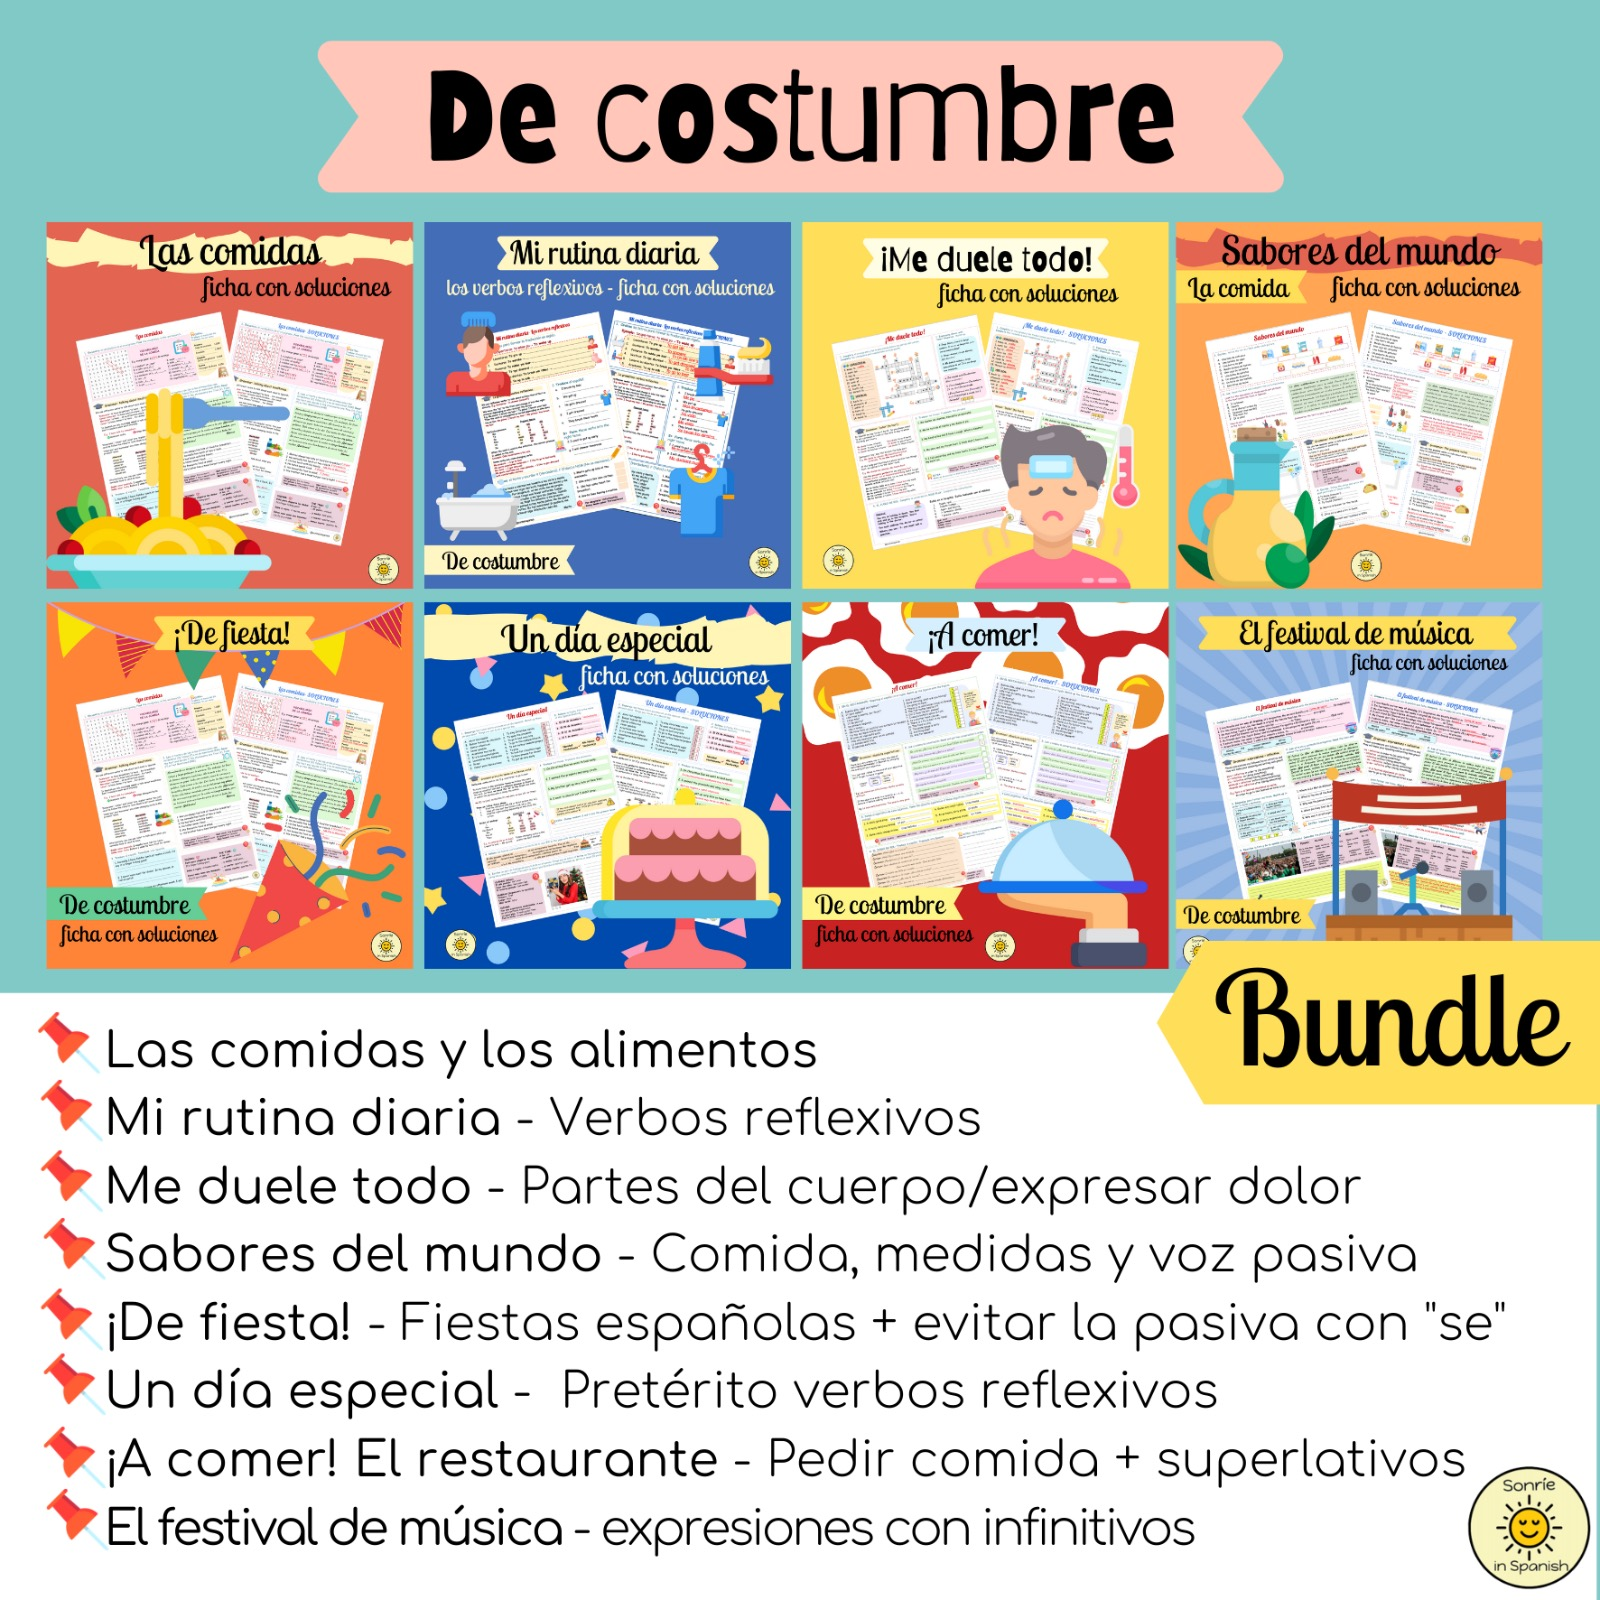 De costumbre. Festivales y comida. Viva GCSE Spanish bundle of 8 worksheets with answers. Pack de 8 fichas: rutinas y cultura